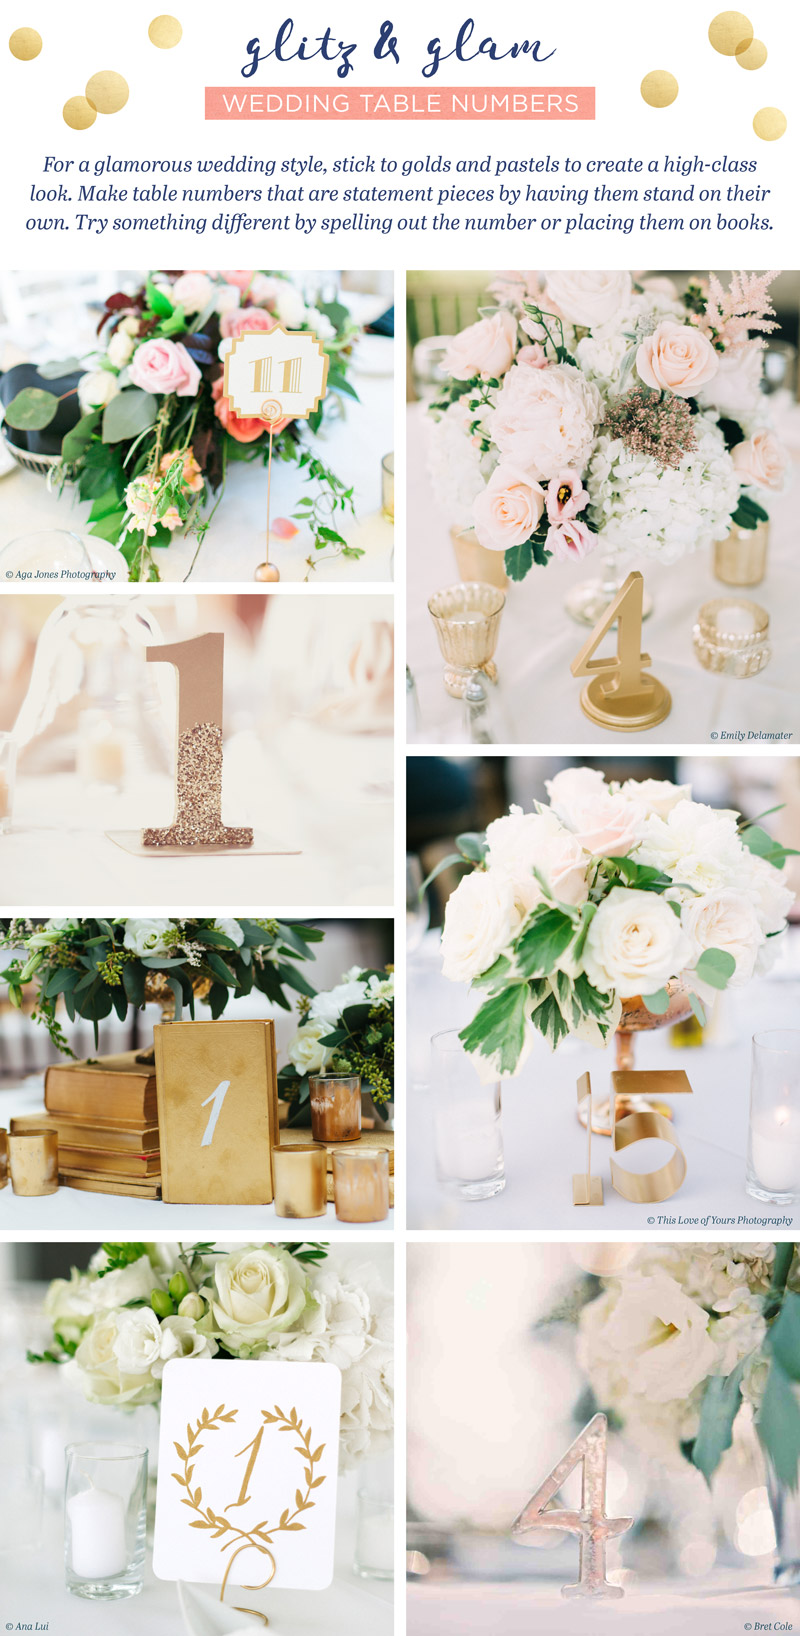 wedding-table-numbers-glam